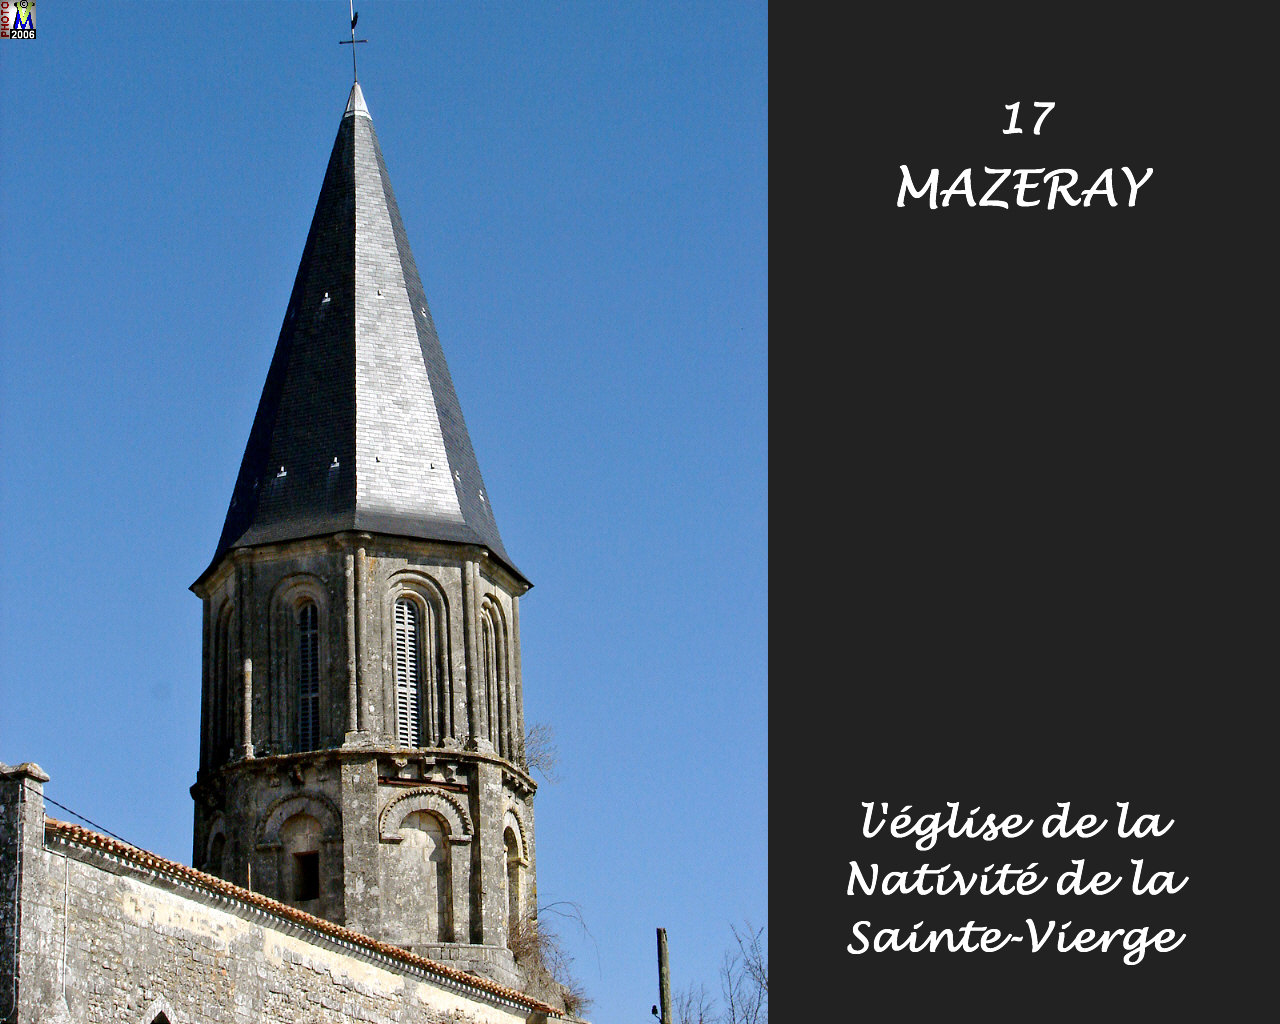 17MAZERAY_eglise_110.jpg